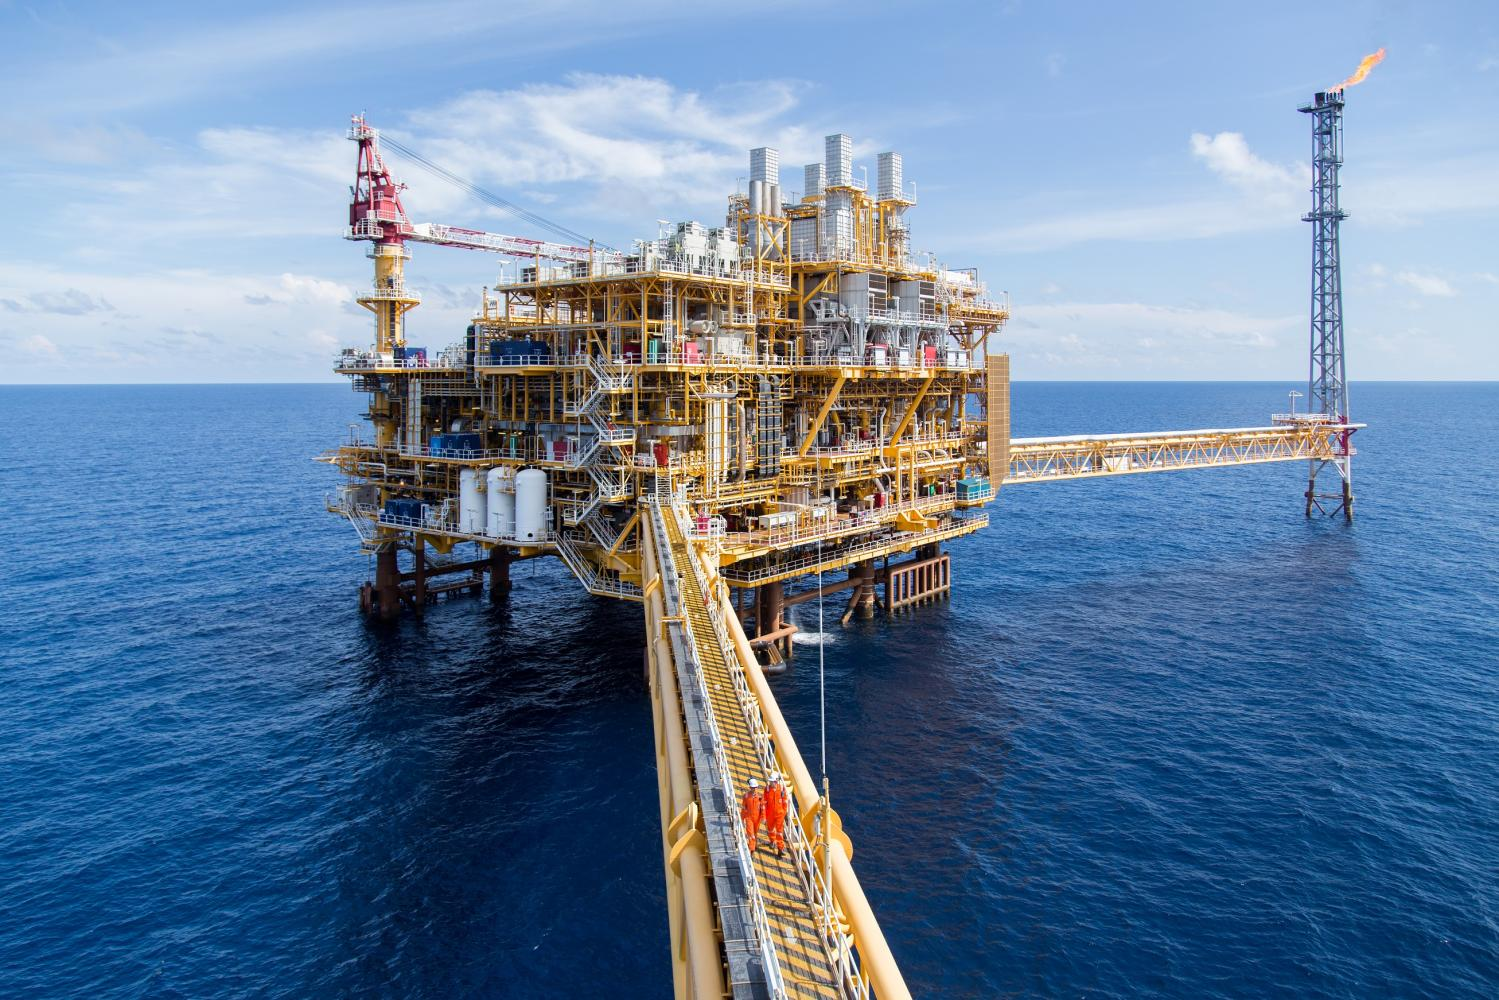 PTTEP's exploration activities this year have tripled from six gas blocks the previous year.